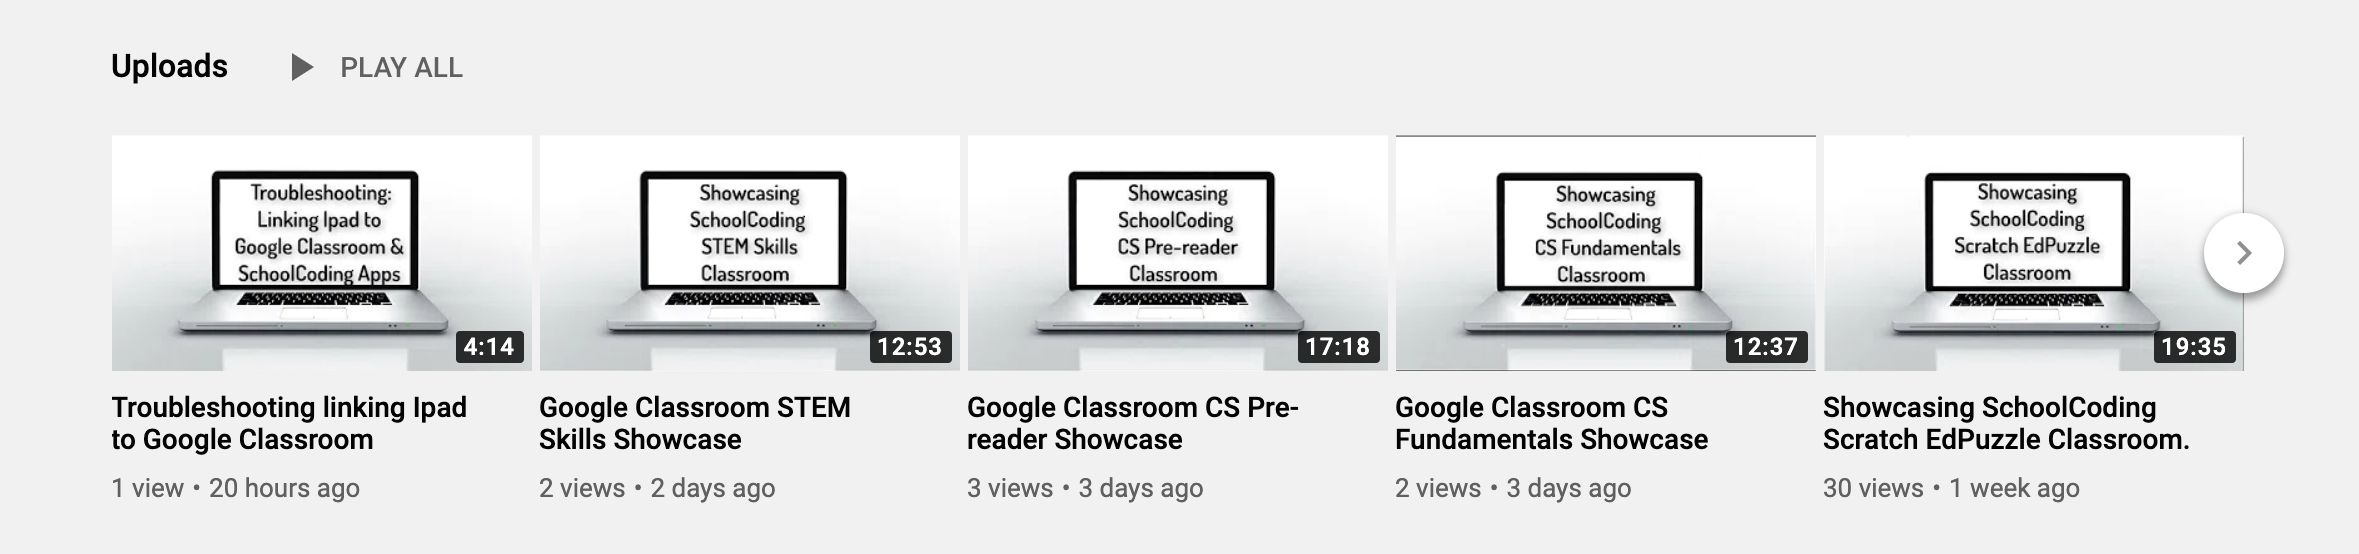 SchoolCoding - Visit our You Tube Channel